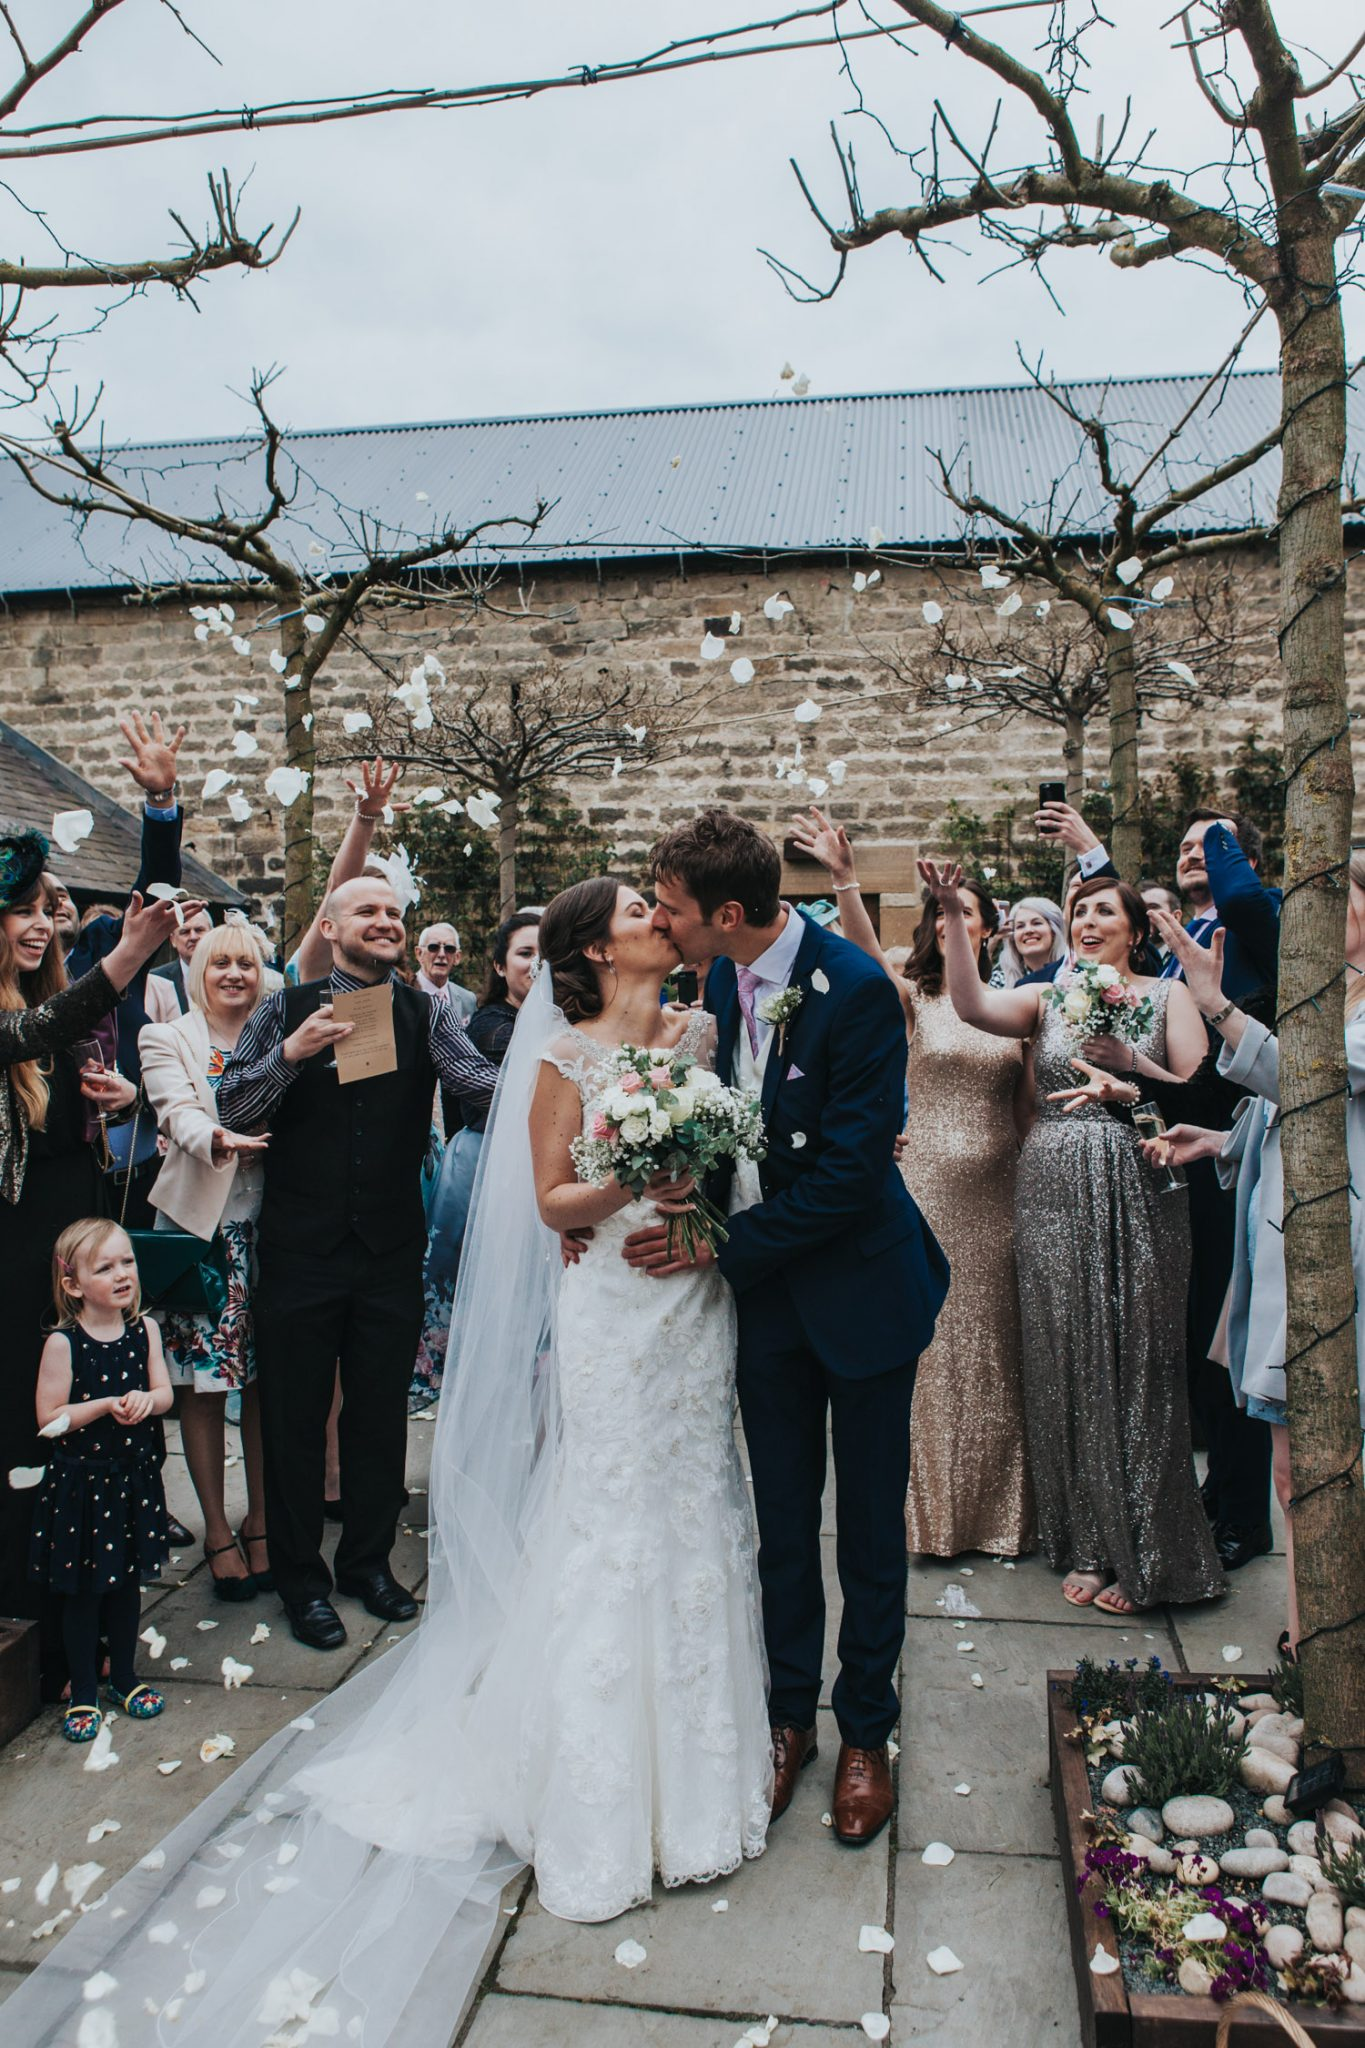 Healey Barn Wedding - bride and groom showered in confetti